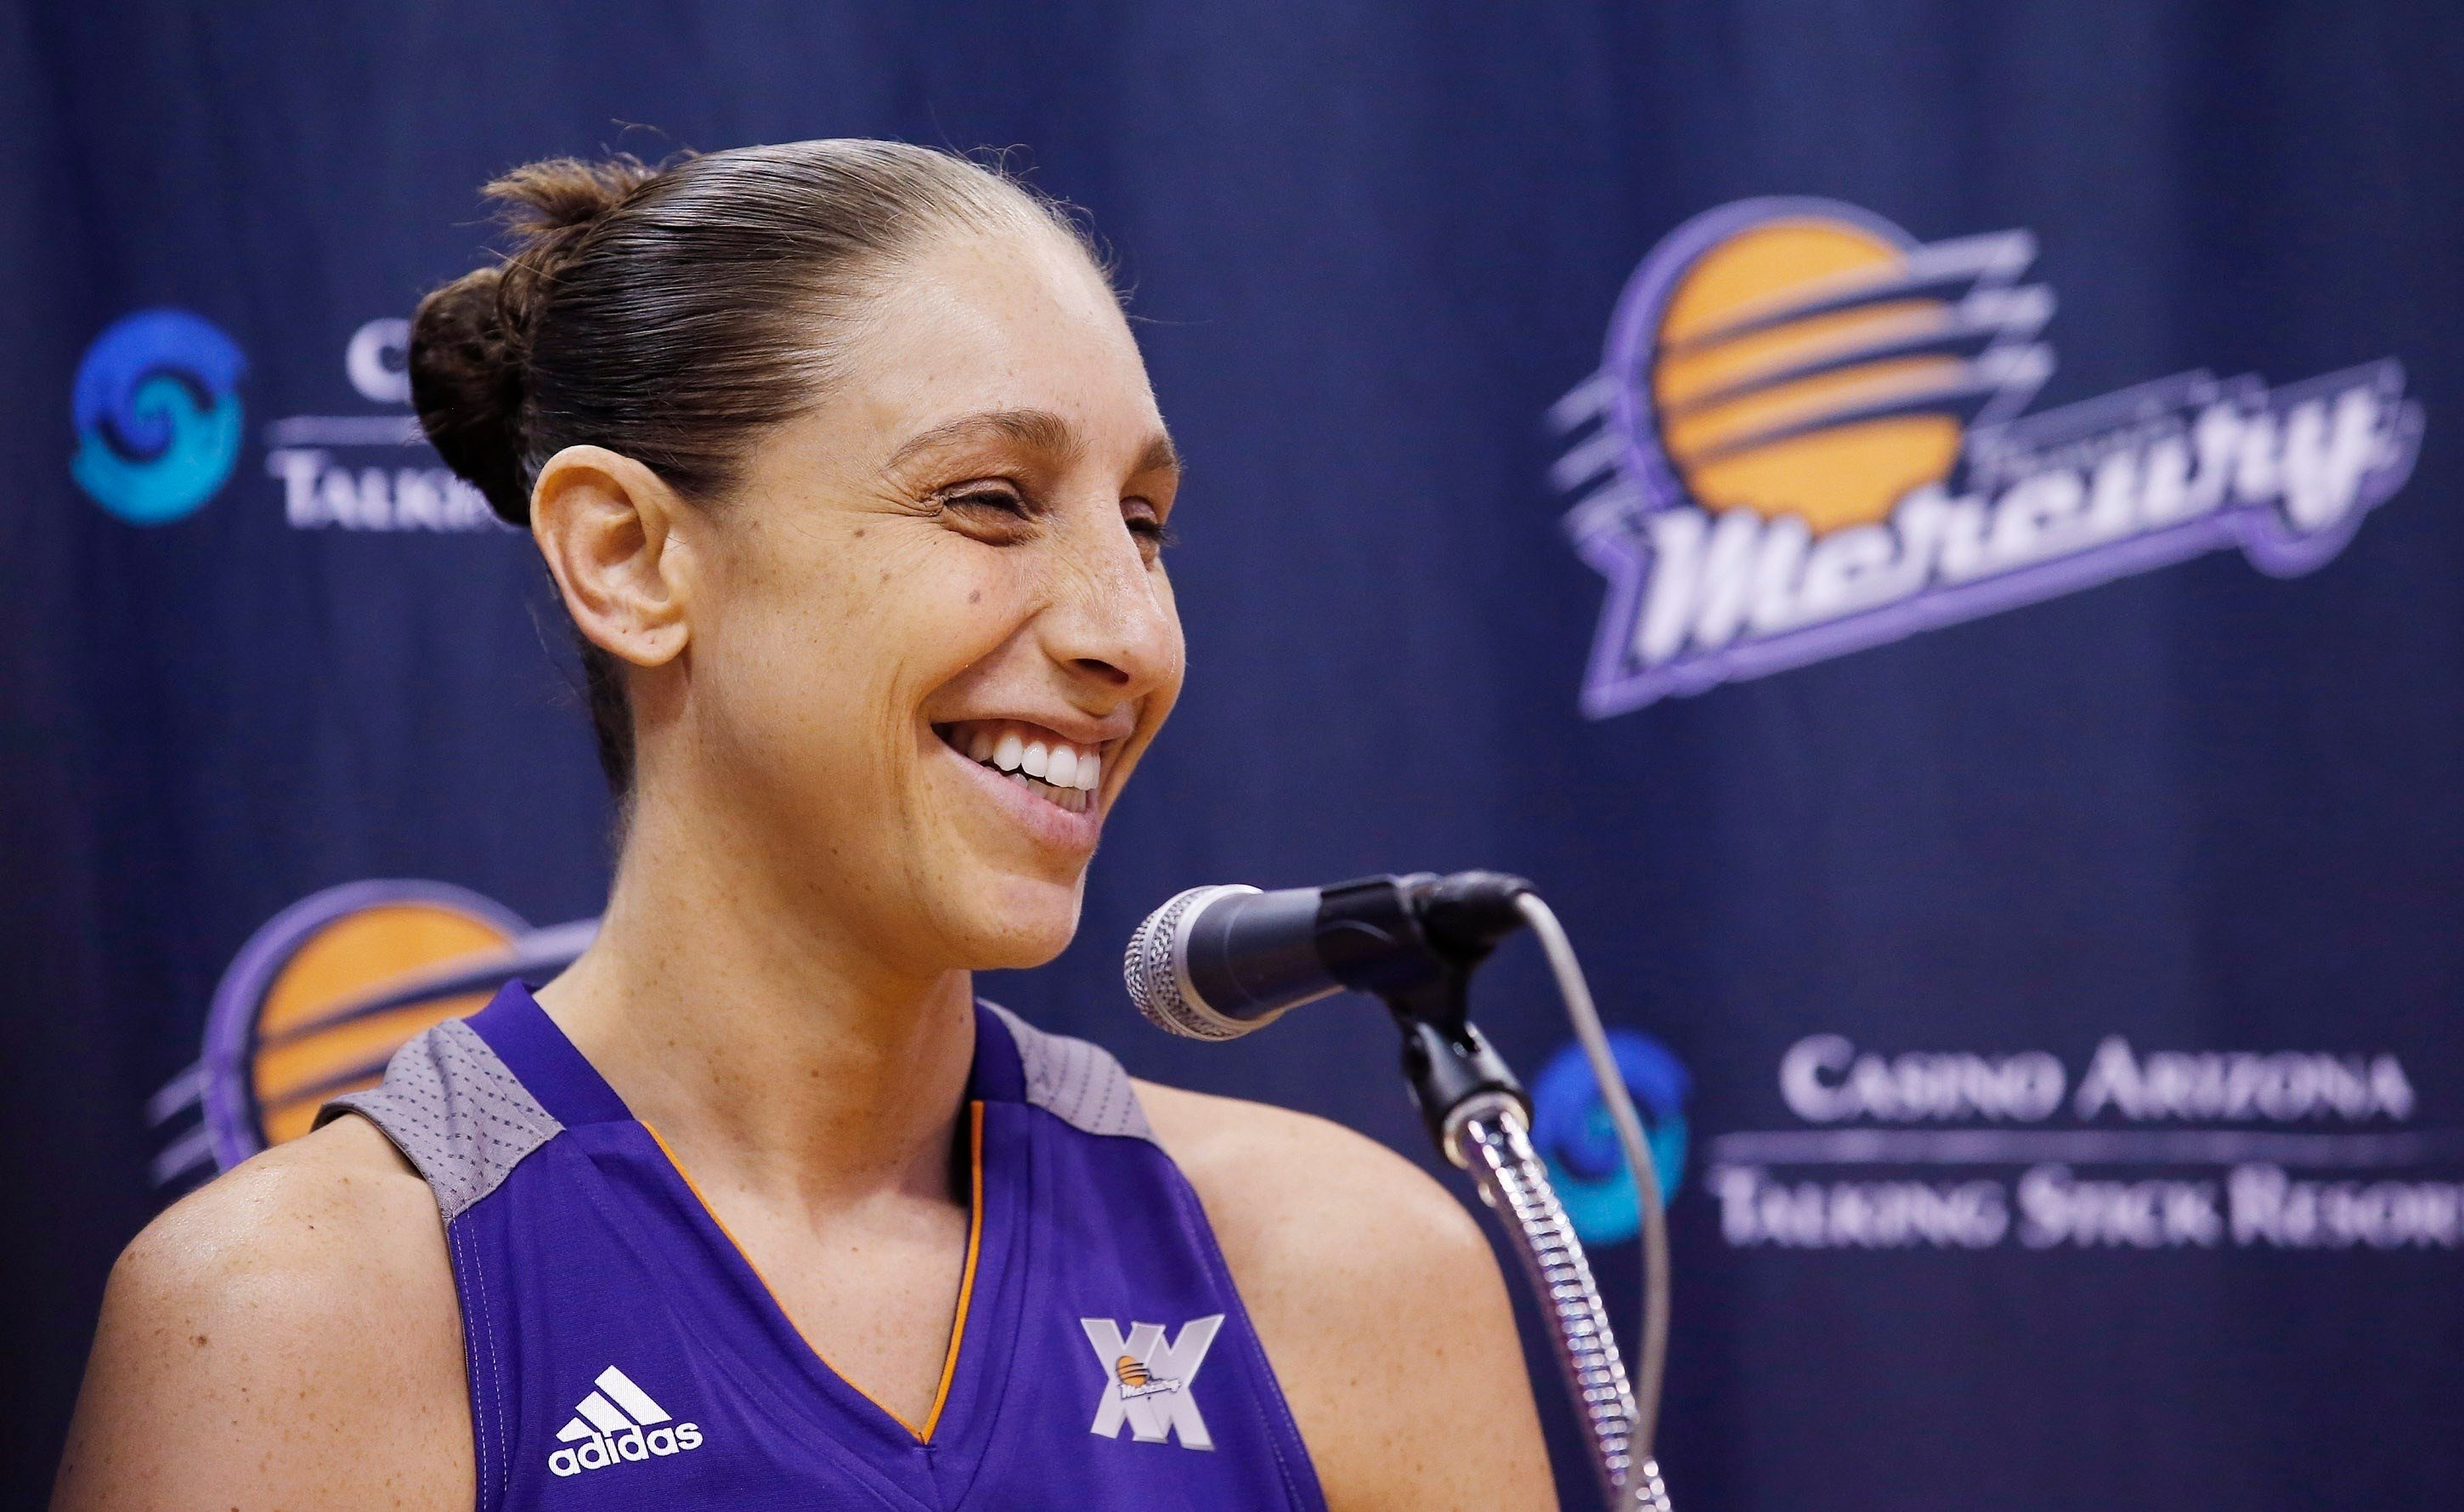 Diana Taurasi became the WNBA's career score leader, passing Tina Thompson's mark of 7,488 on June 18, 2017. (Source: Associated Press)